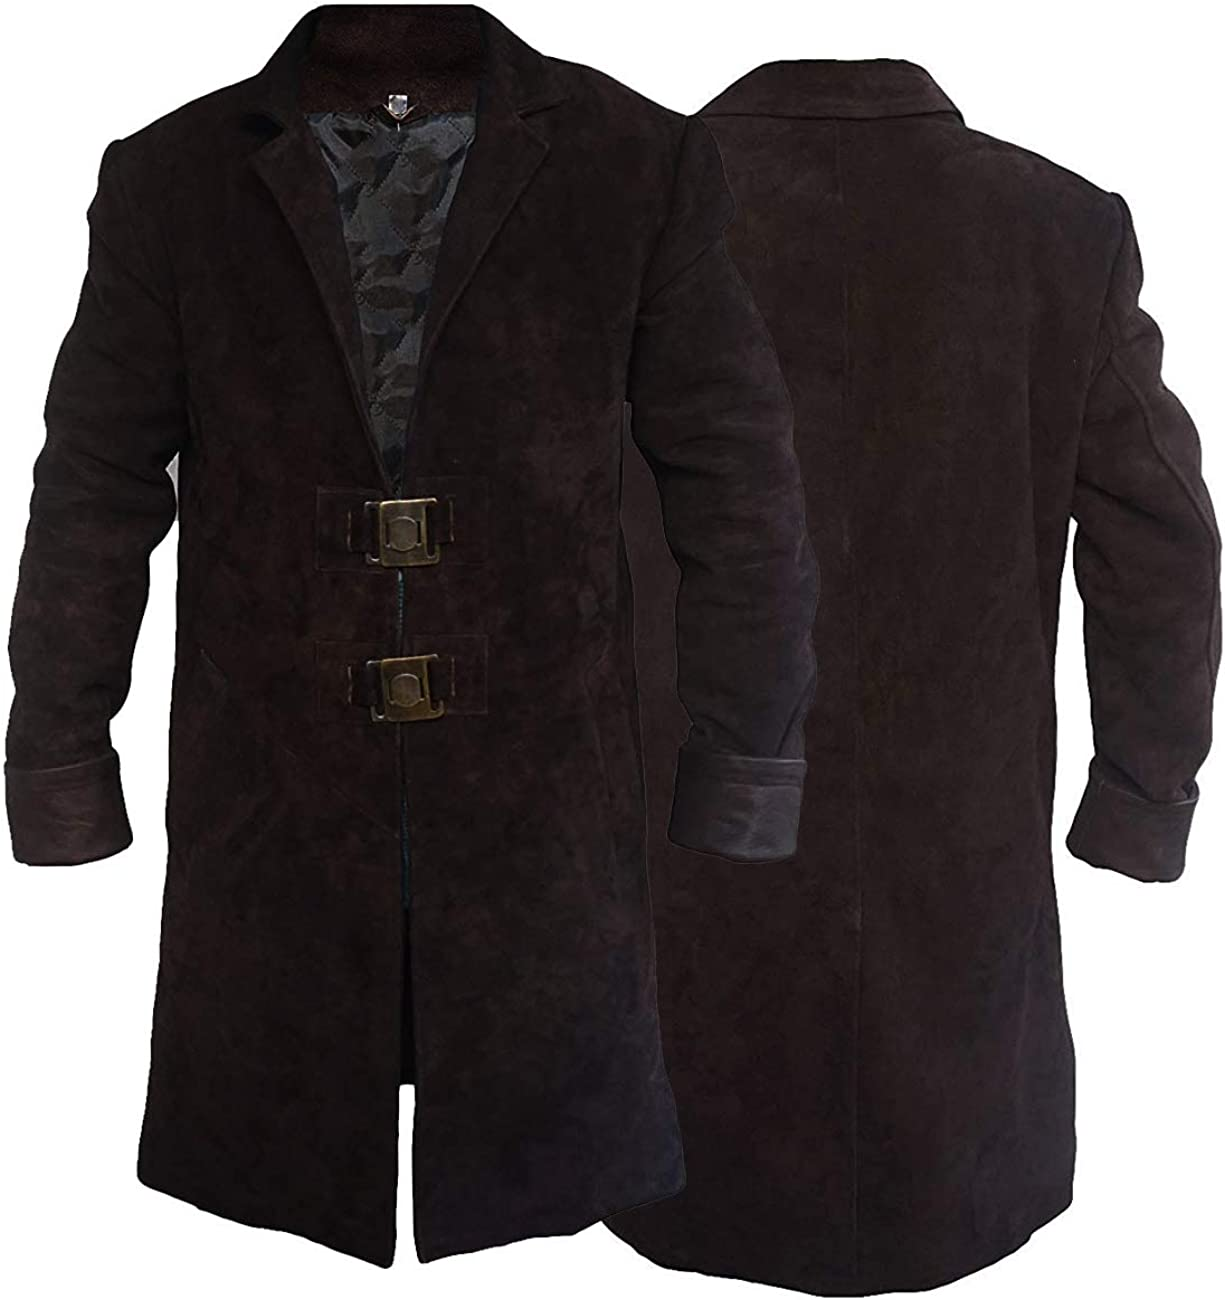 Firefly Captain Malcolm Reynolds celebrity Nathan Fillion Brown Suede Leather Trench Coat For Mens